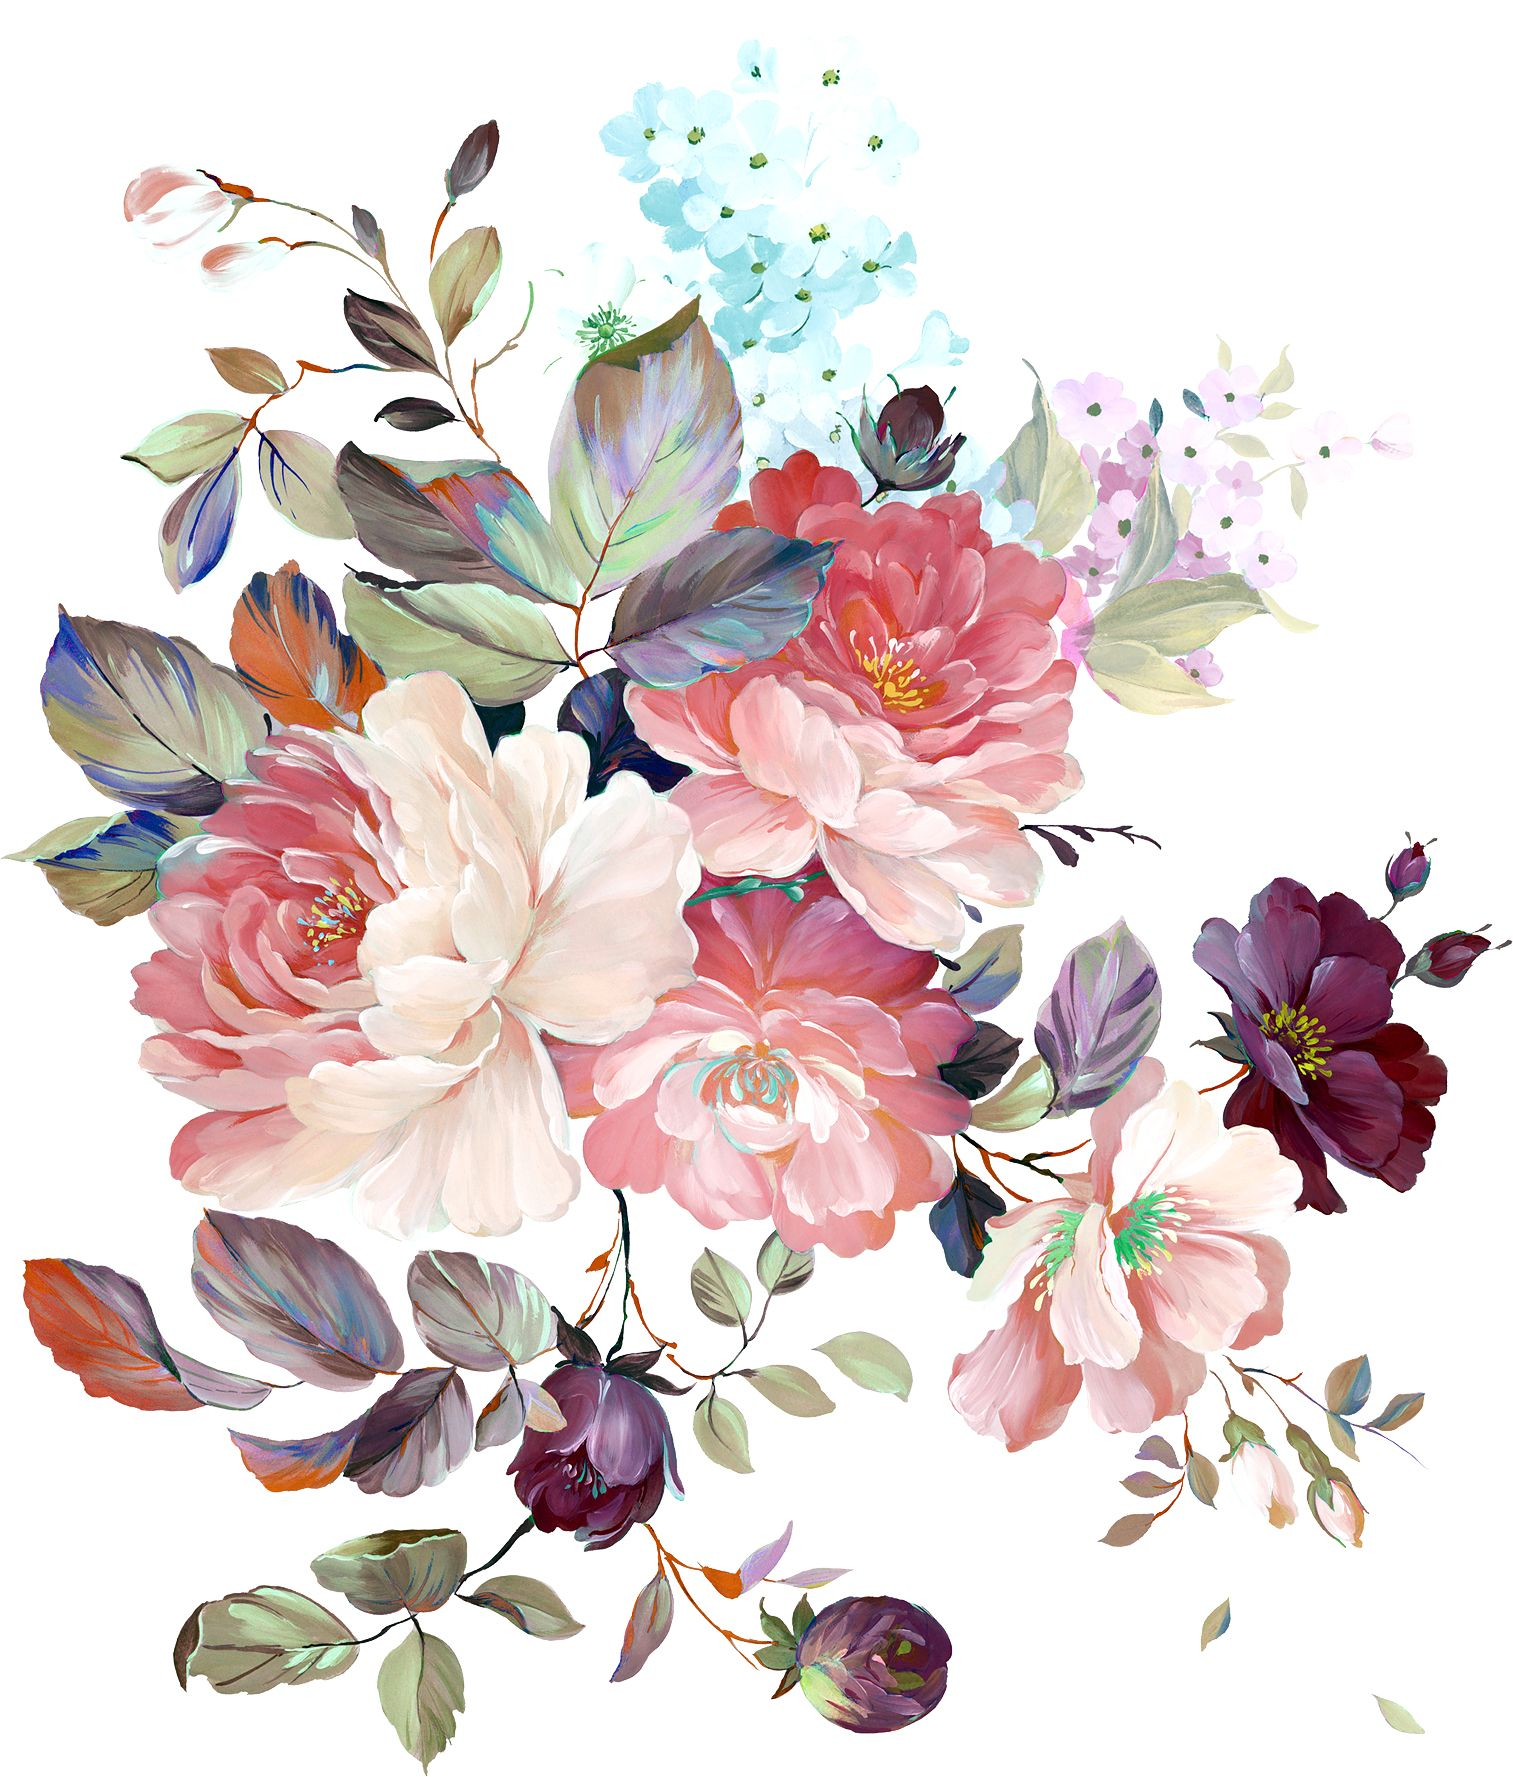 Pin By Harish On A Flower Art Flower Painting Watercolor Flowers